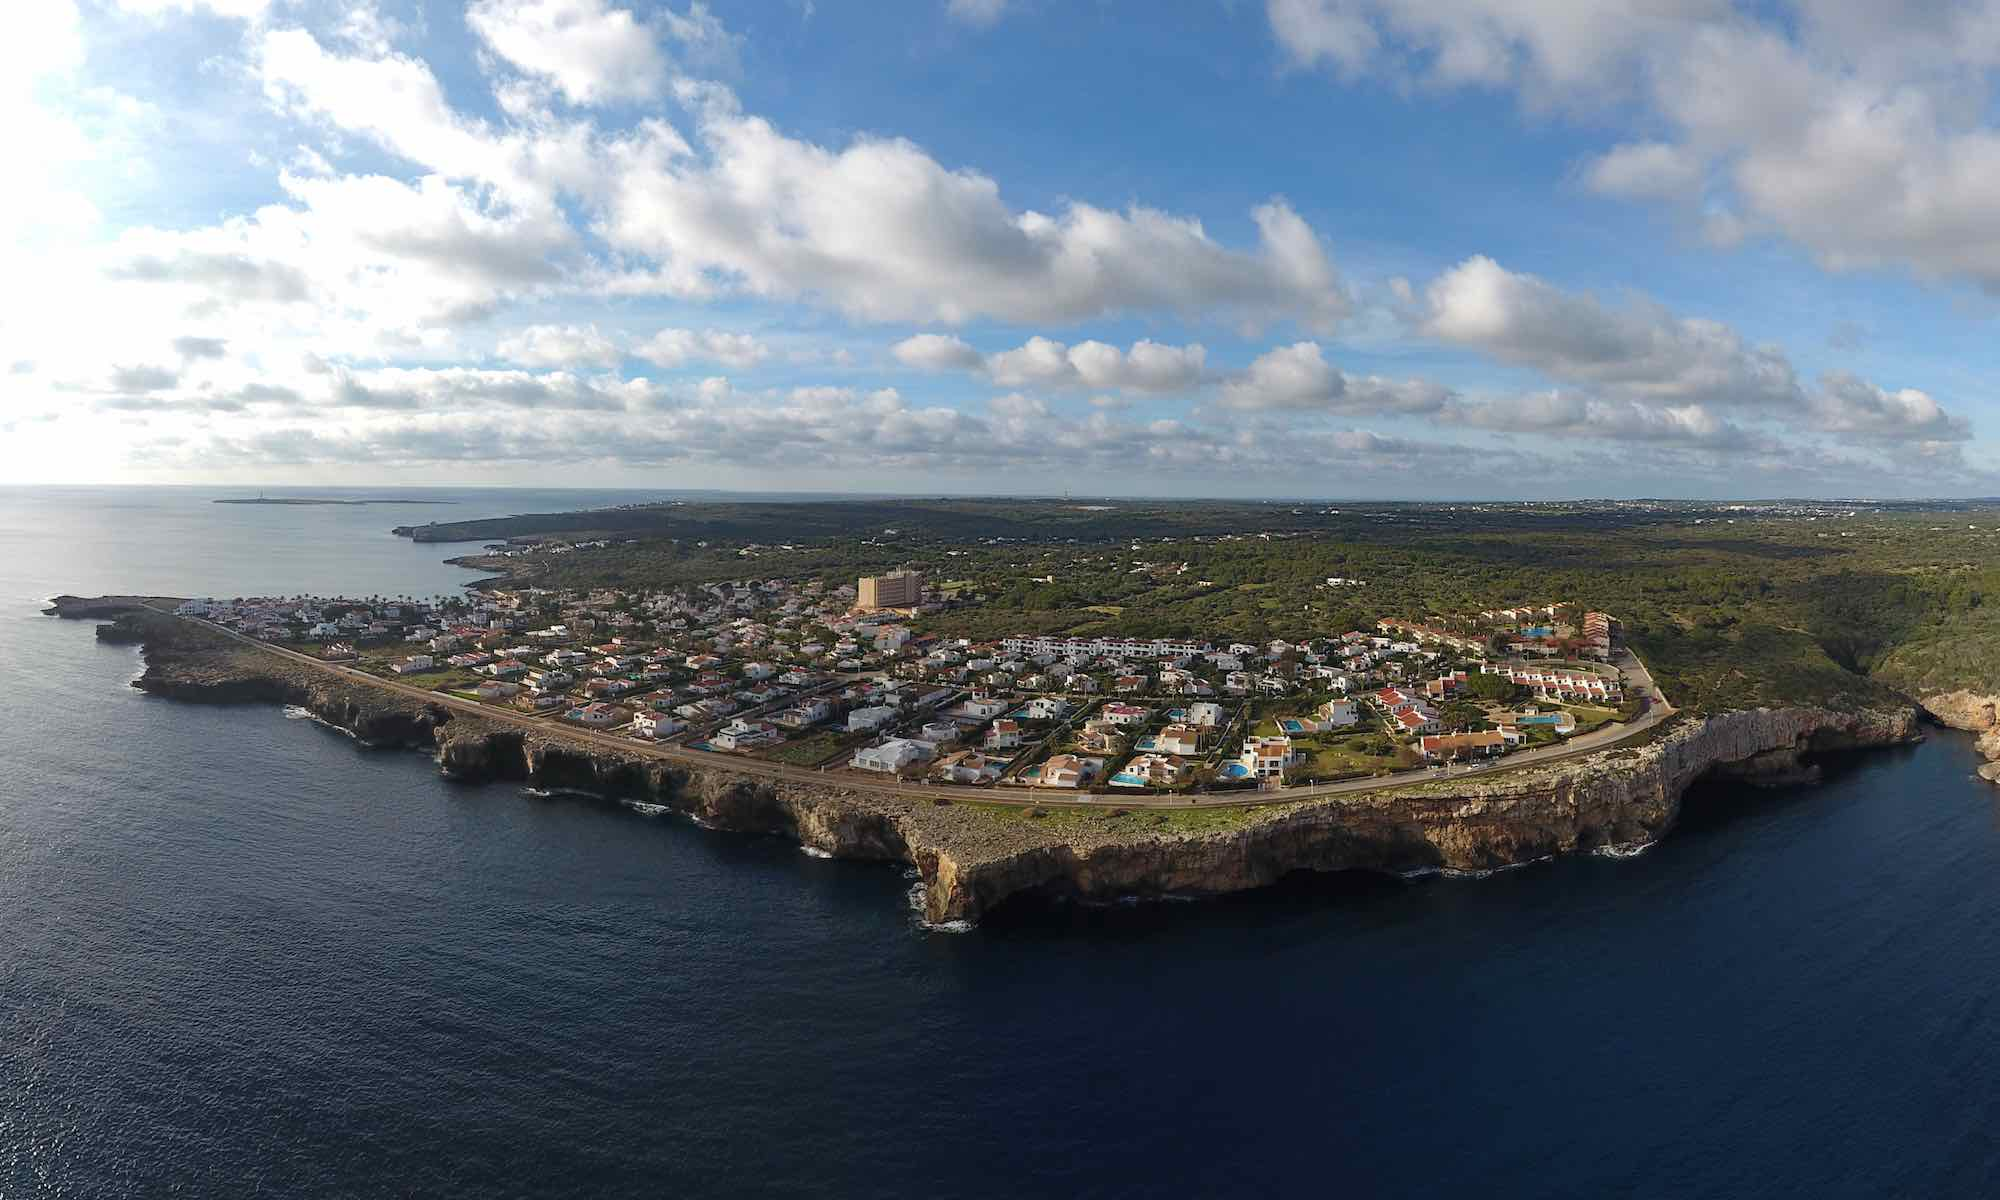 Aerial view of S'Algar in Menorca across the Marine Reserve Isla del Aire